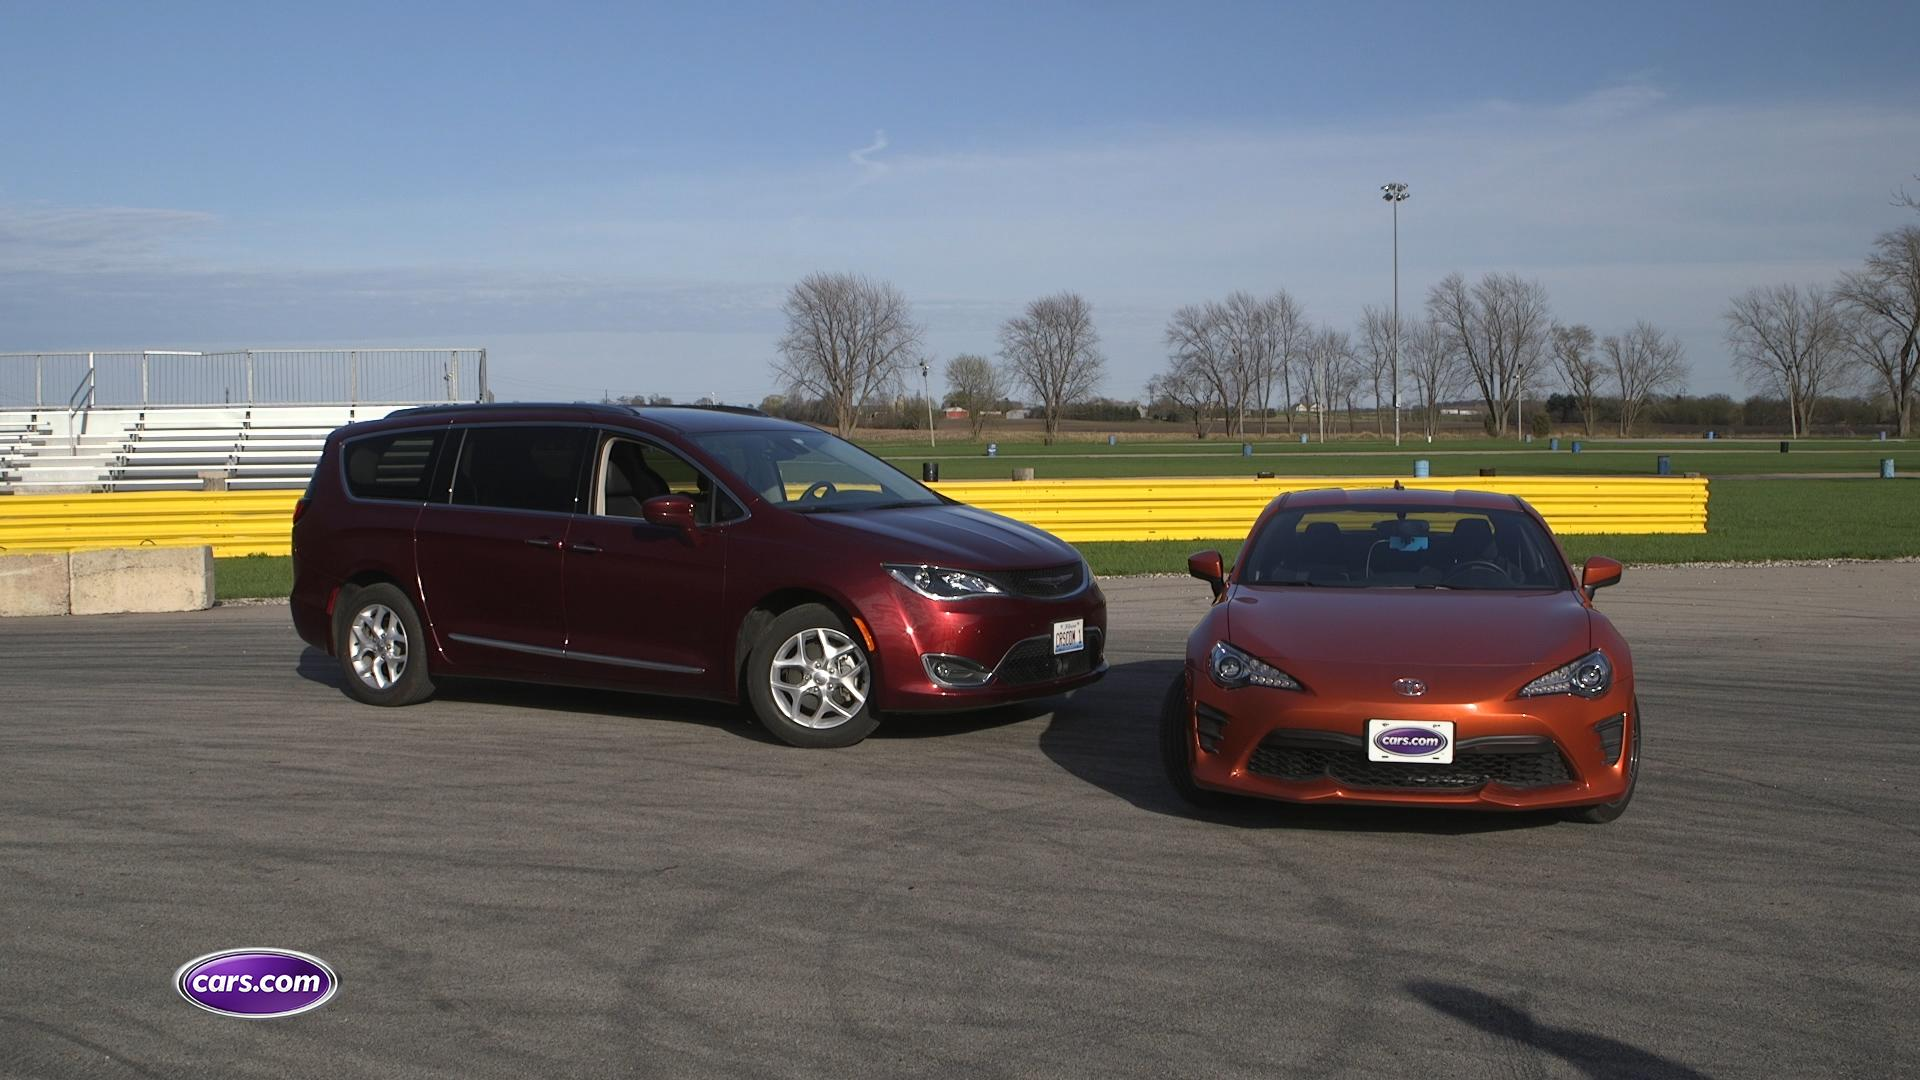 Dragstrip Challenge: 2017 Chrysler Pacifica vs. 2017 Toyota 86